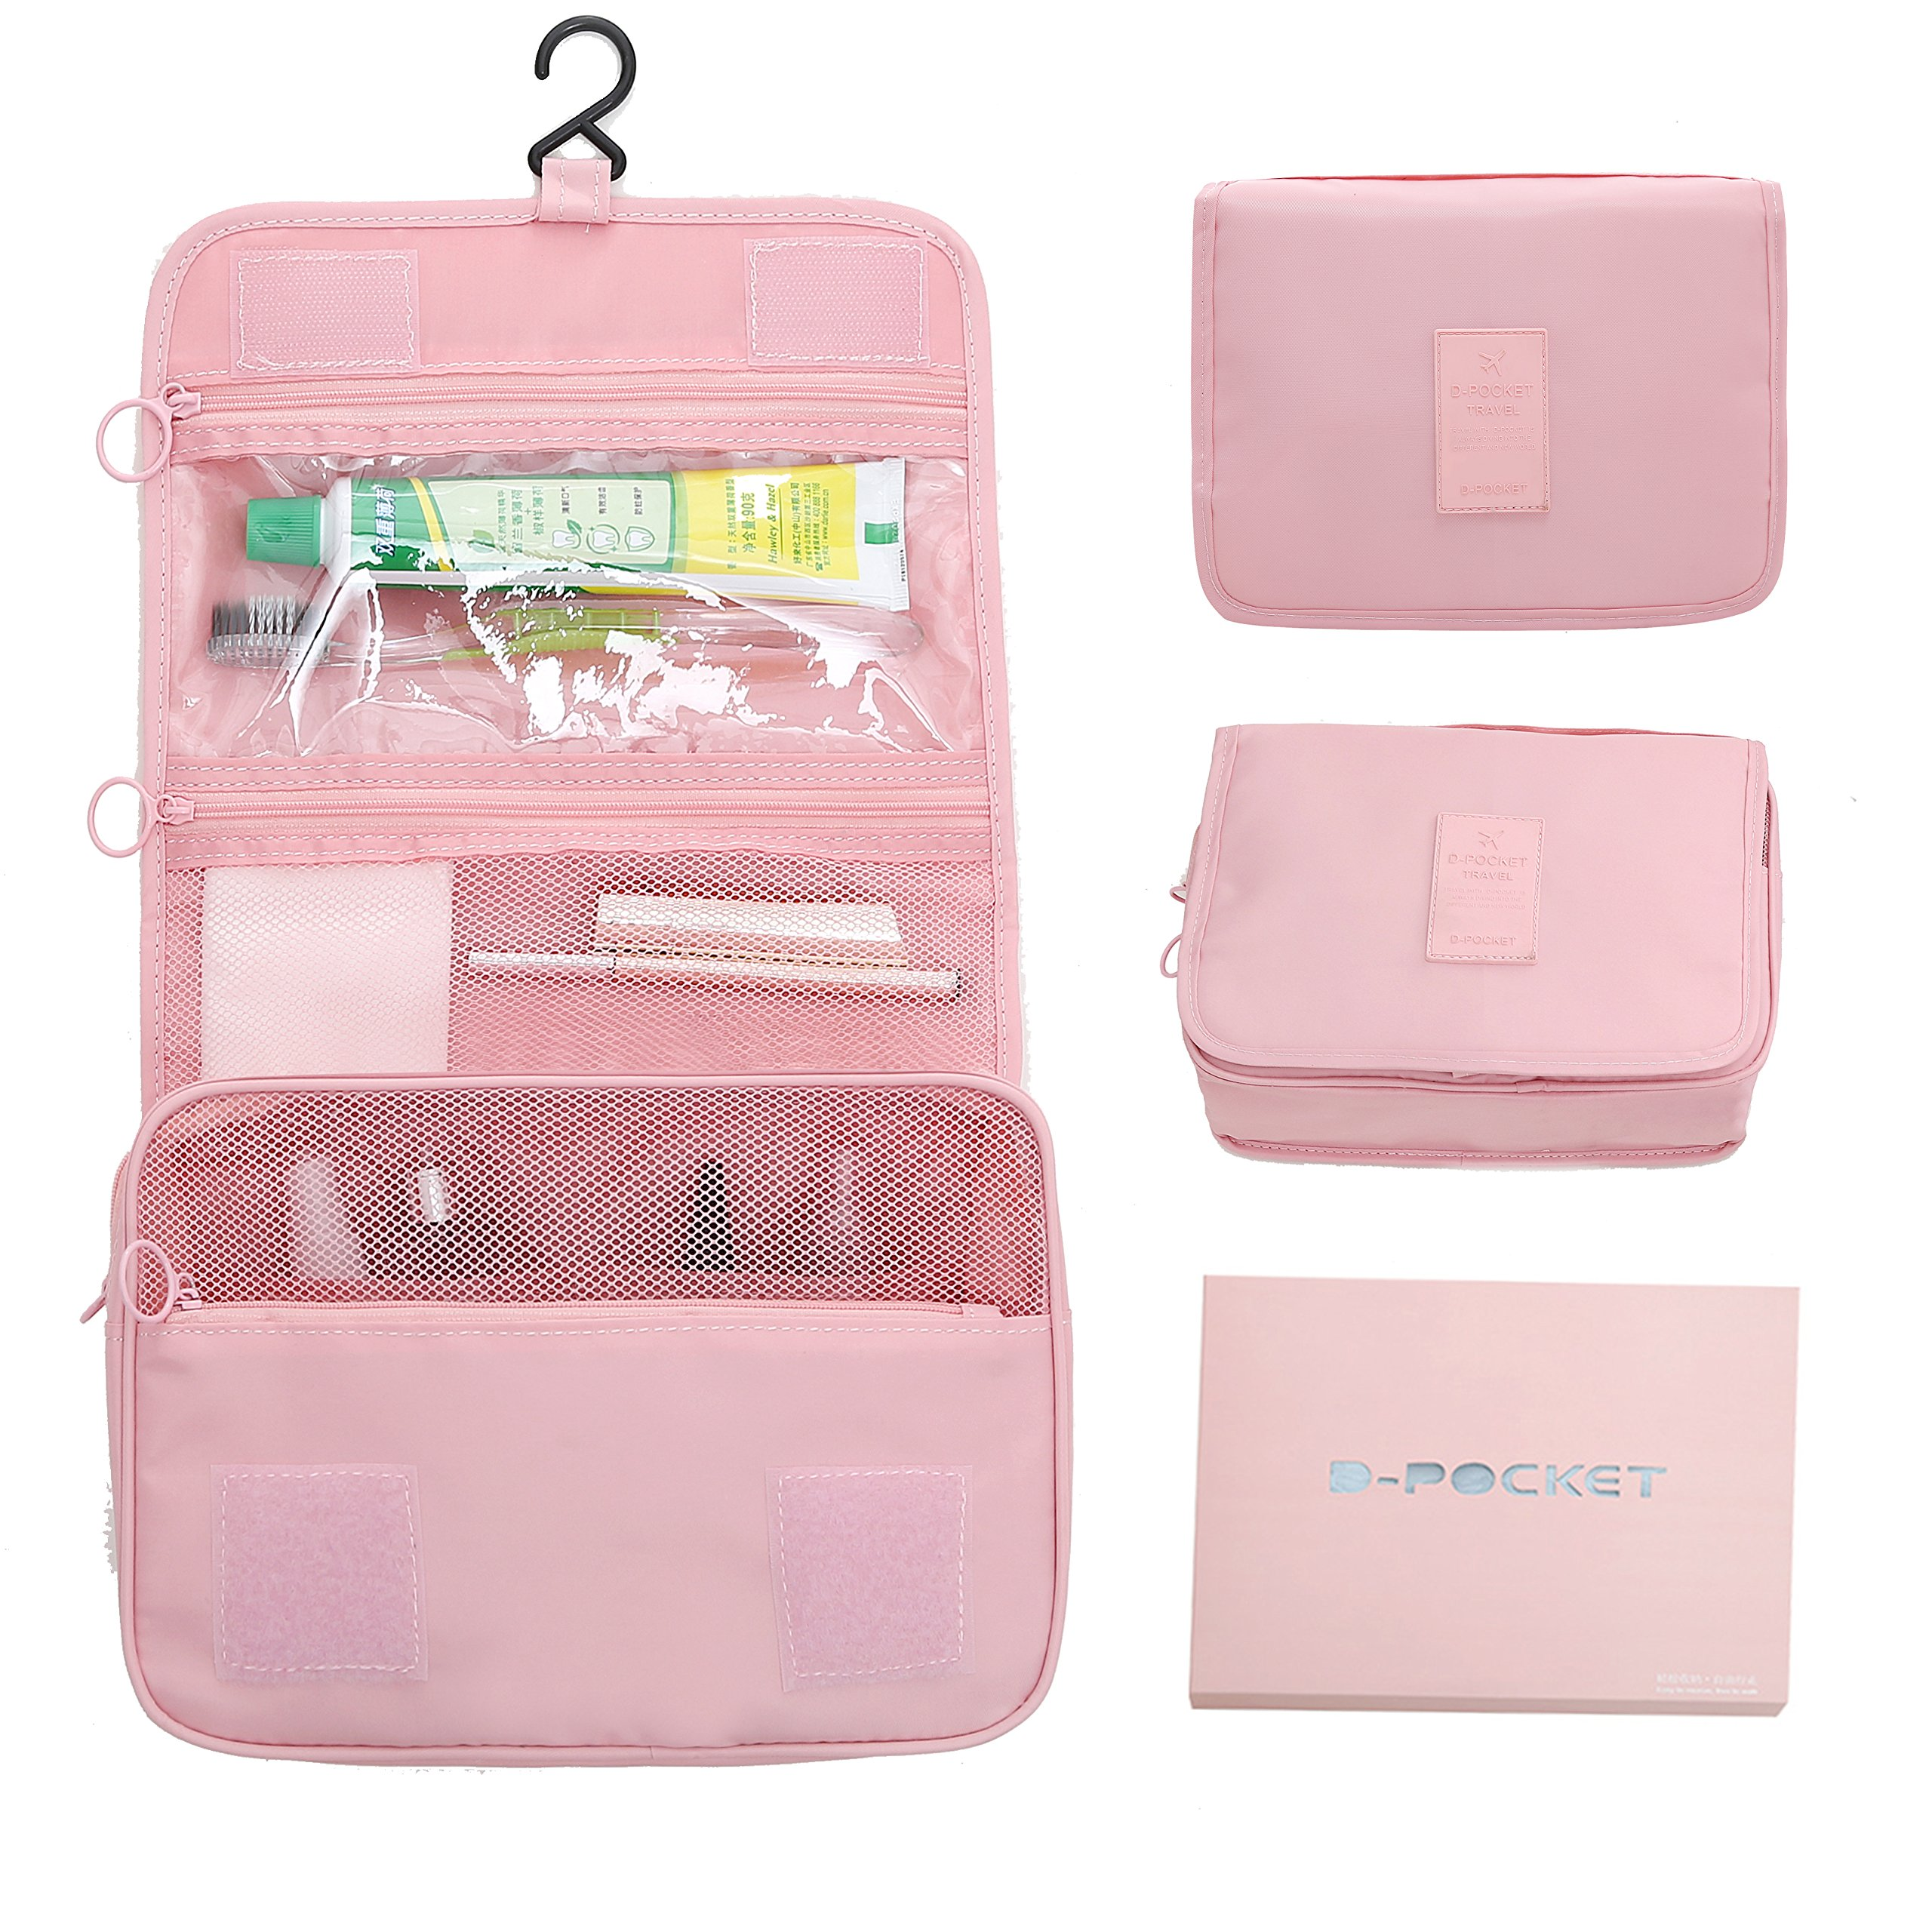 hanging cosmetic travel bag Portable Travel Makeup Cosmetic Bag waterproof travel bag makeup bag Men and women, old and young Christmas gift (pink)